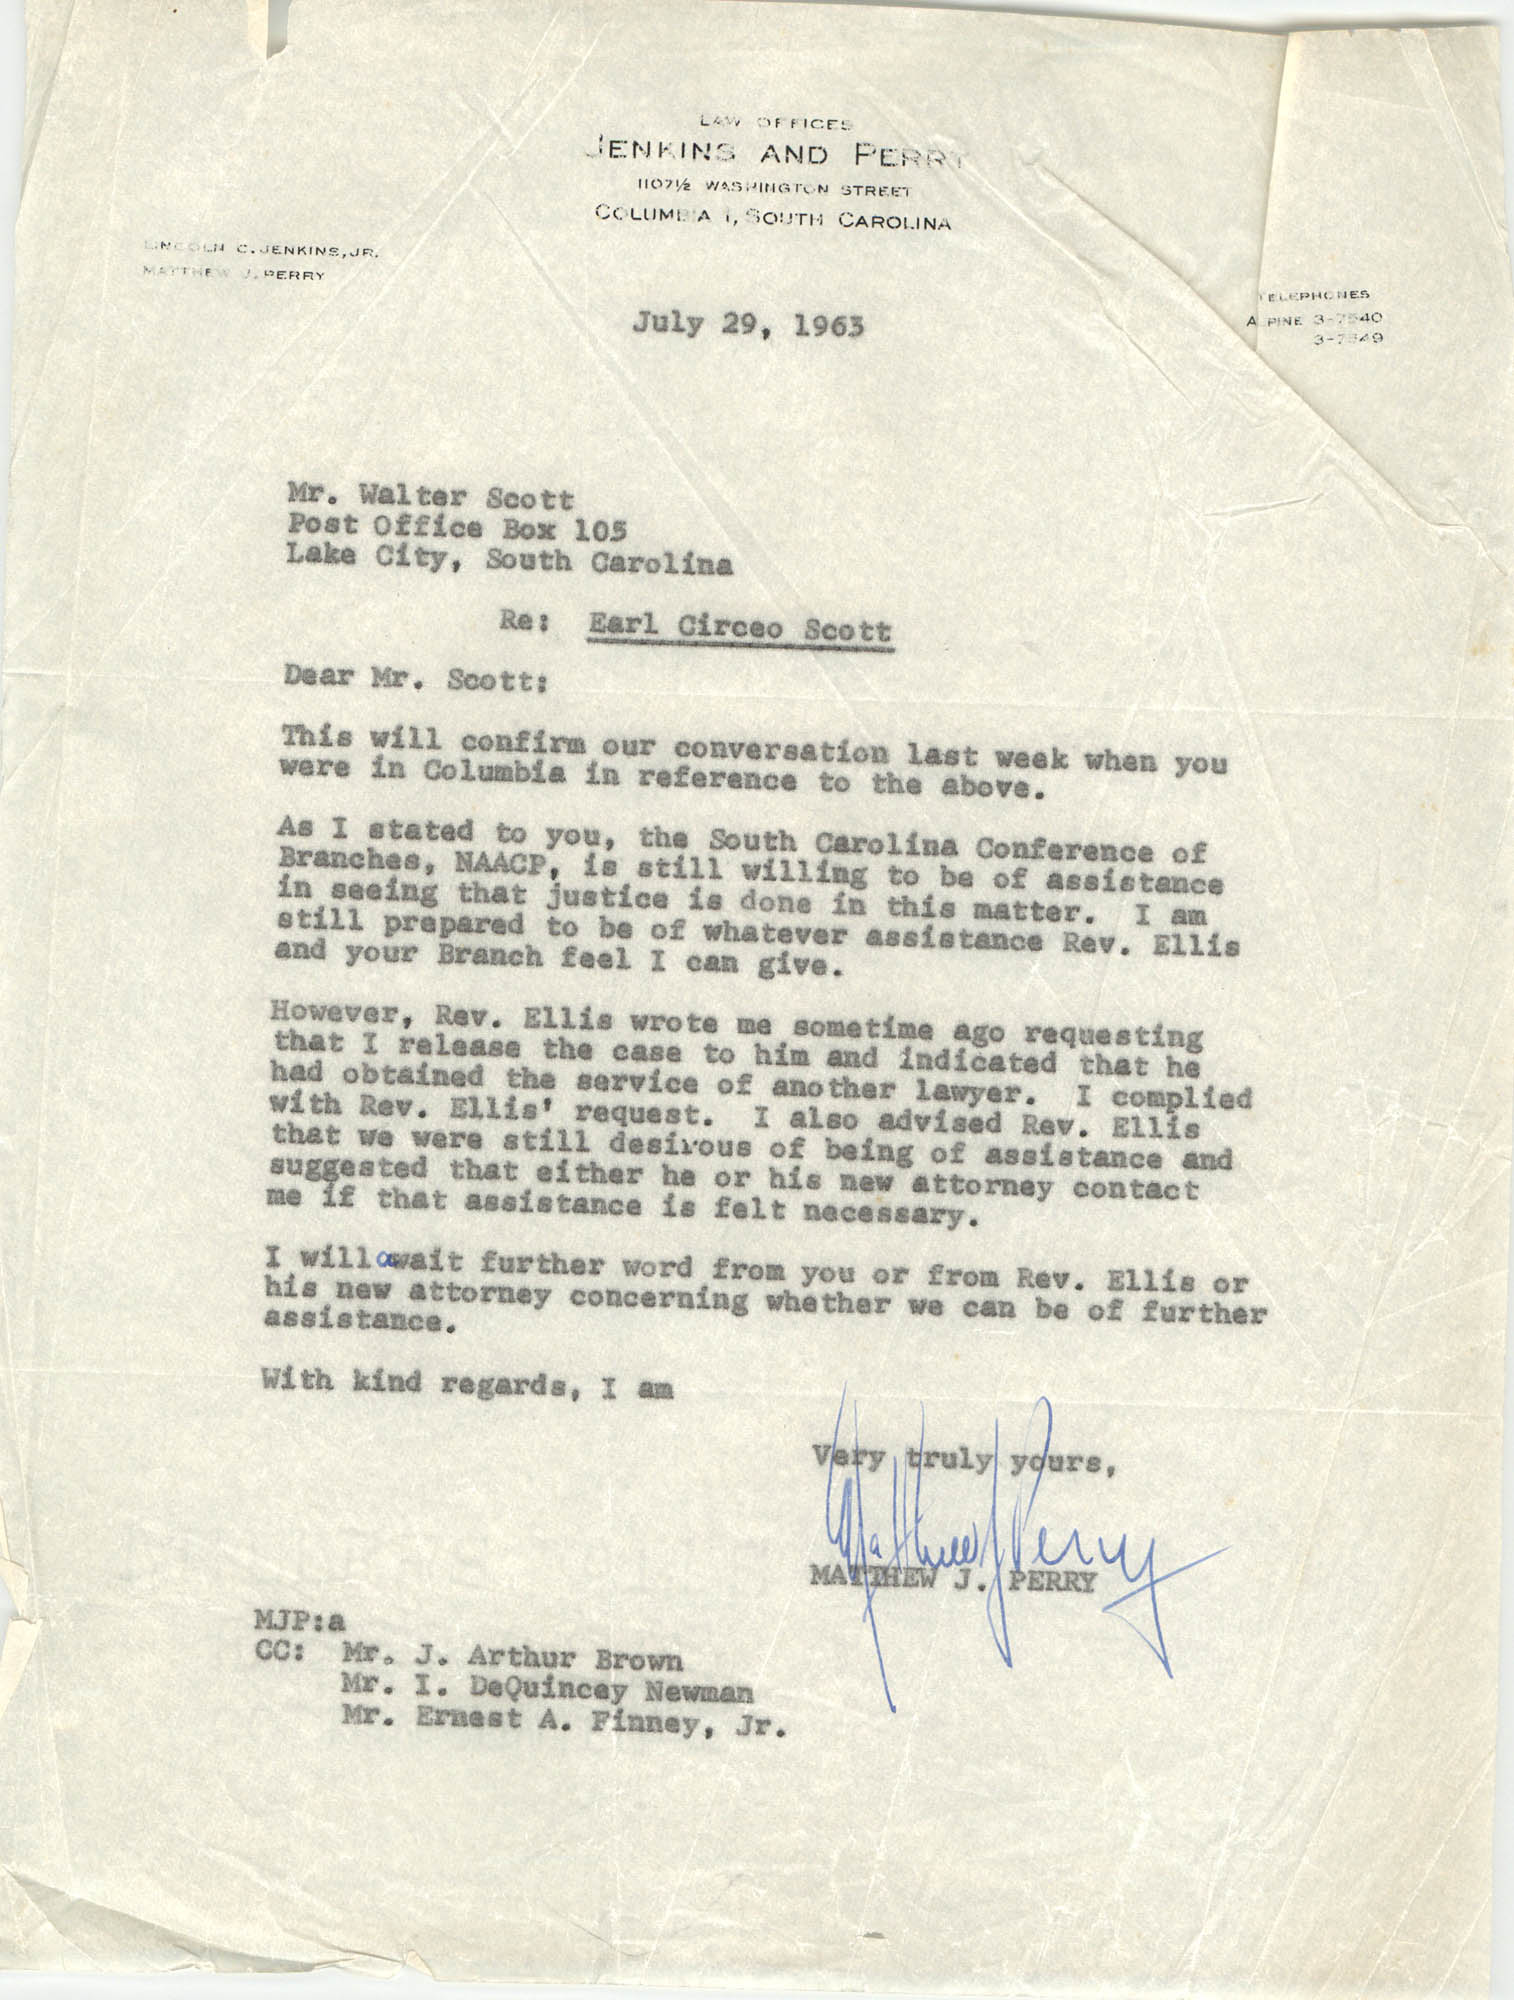 Letter from Matthew J. Perry to Walter Scott, July 29, 1963